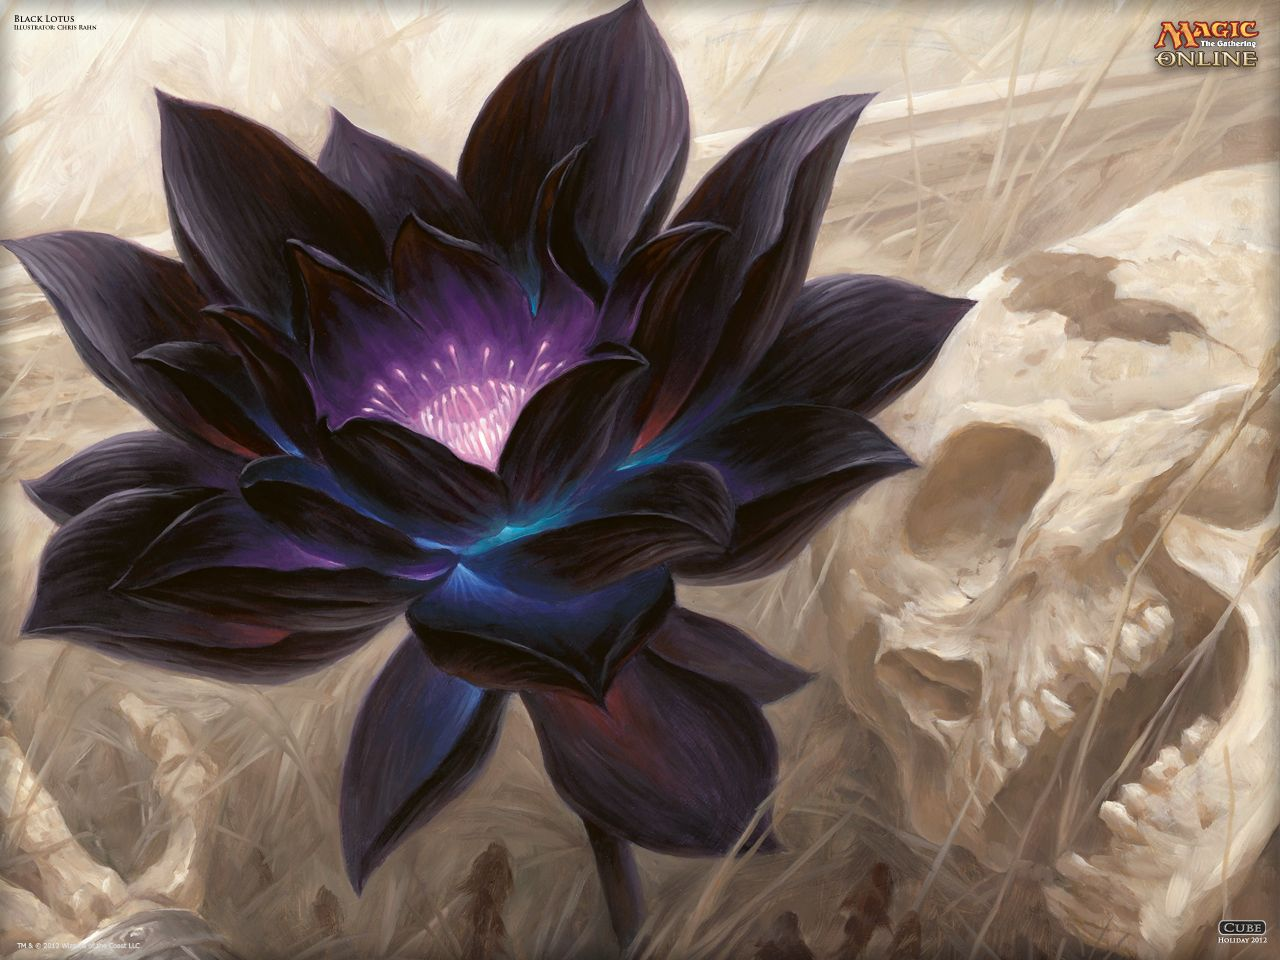 Wallpaper Of The Day Black Lotus Daily Mtg Magic The Gathering